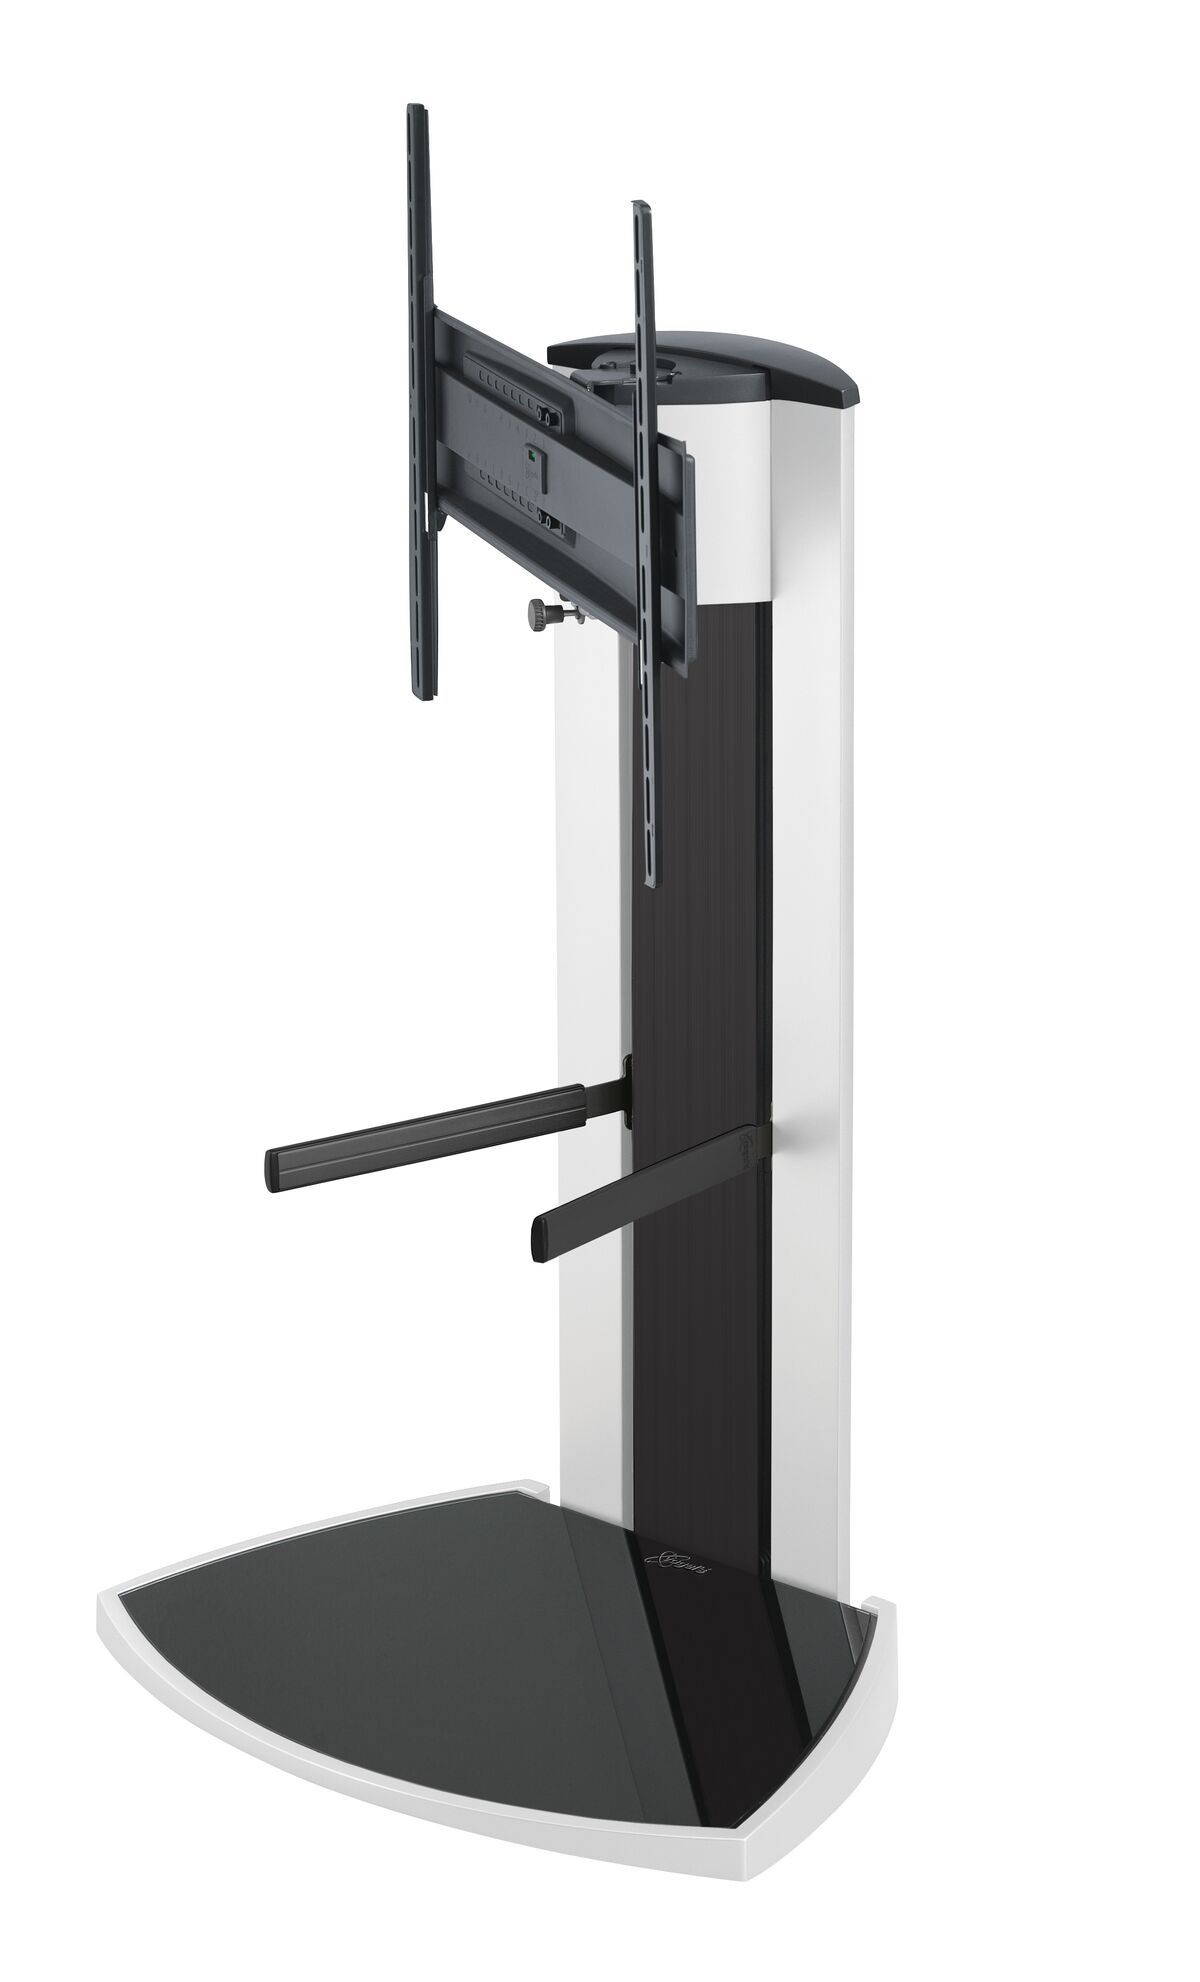 Vogel's EFF 8340 TV Floor Stand (white) - Suitable for 40 up to 65 inch TVs up to 45 kg - Side view